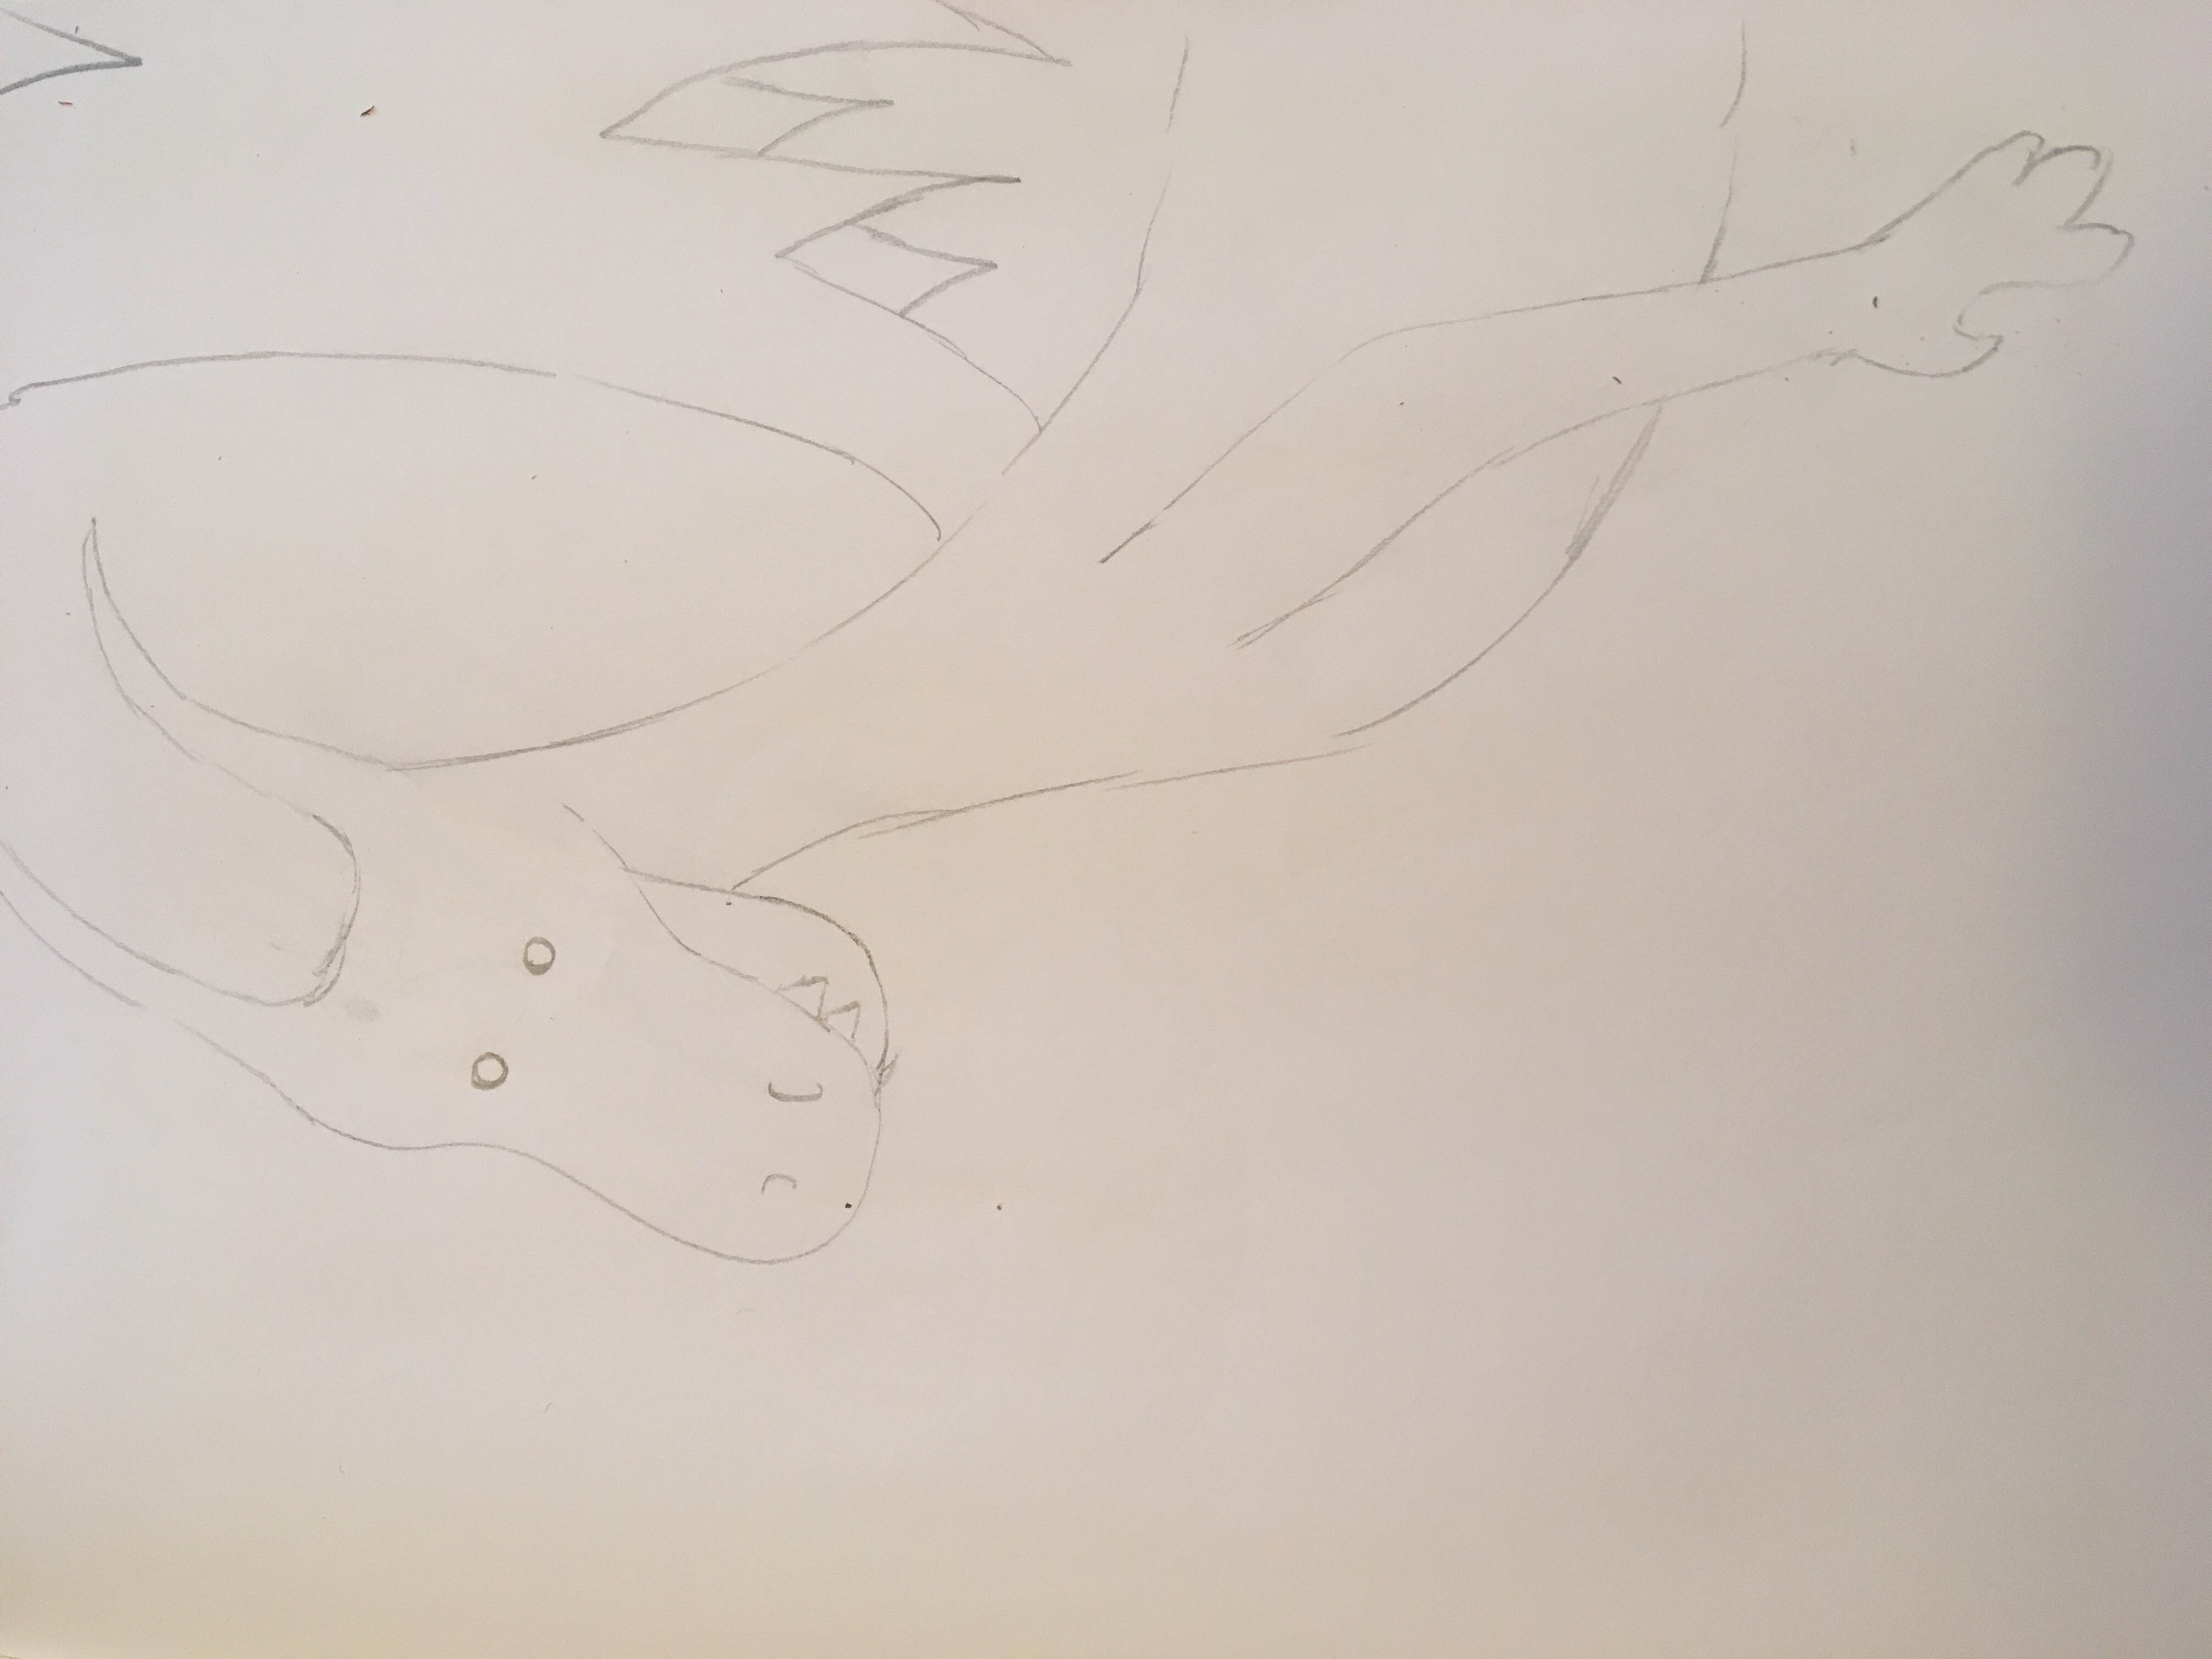 Sketch of a cartoon dragon in-flight in pencil small eyes